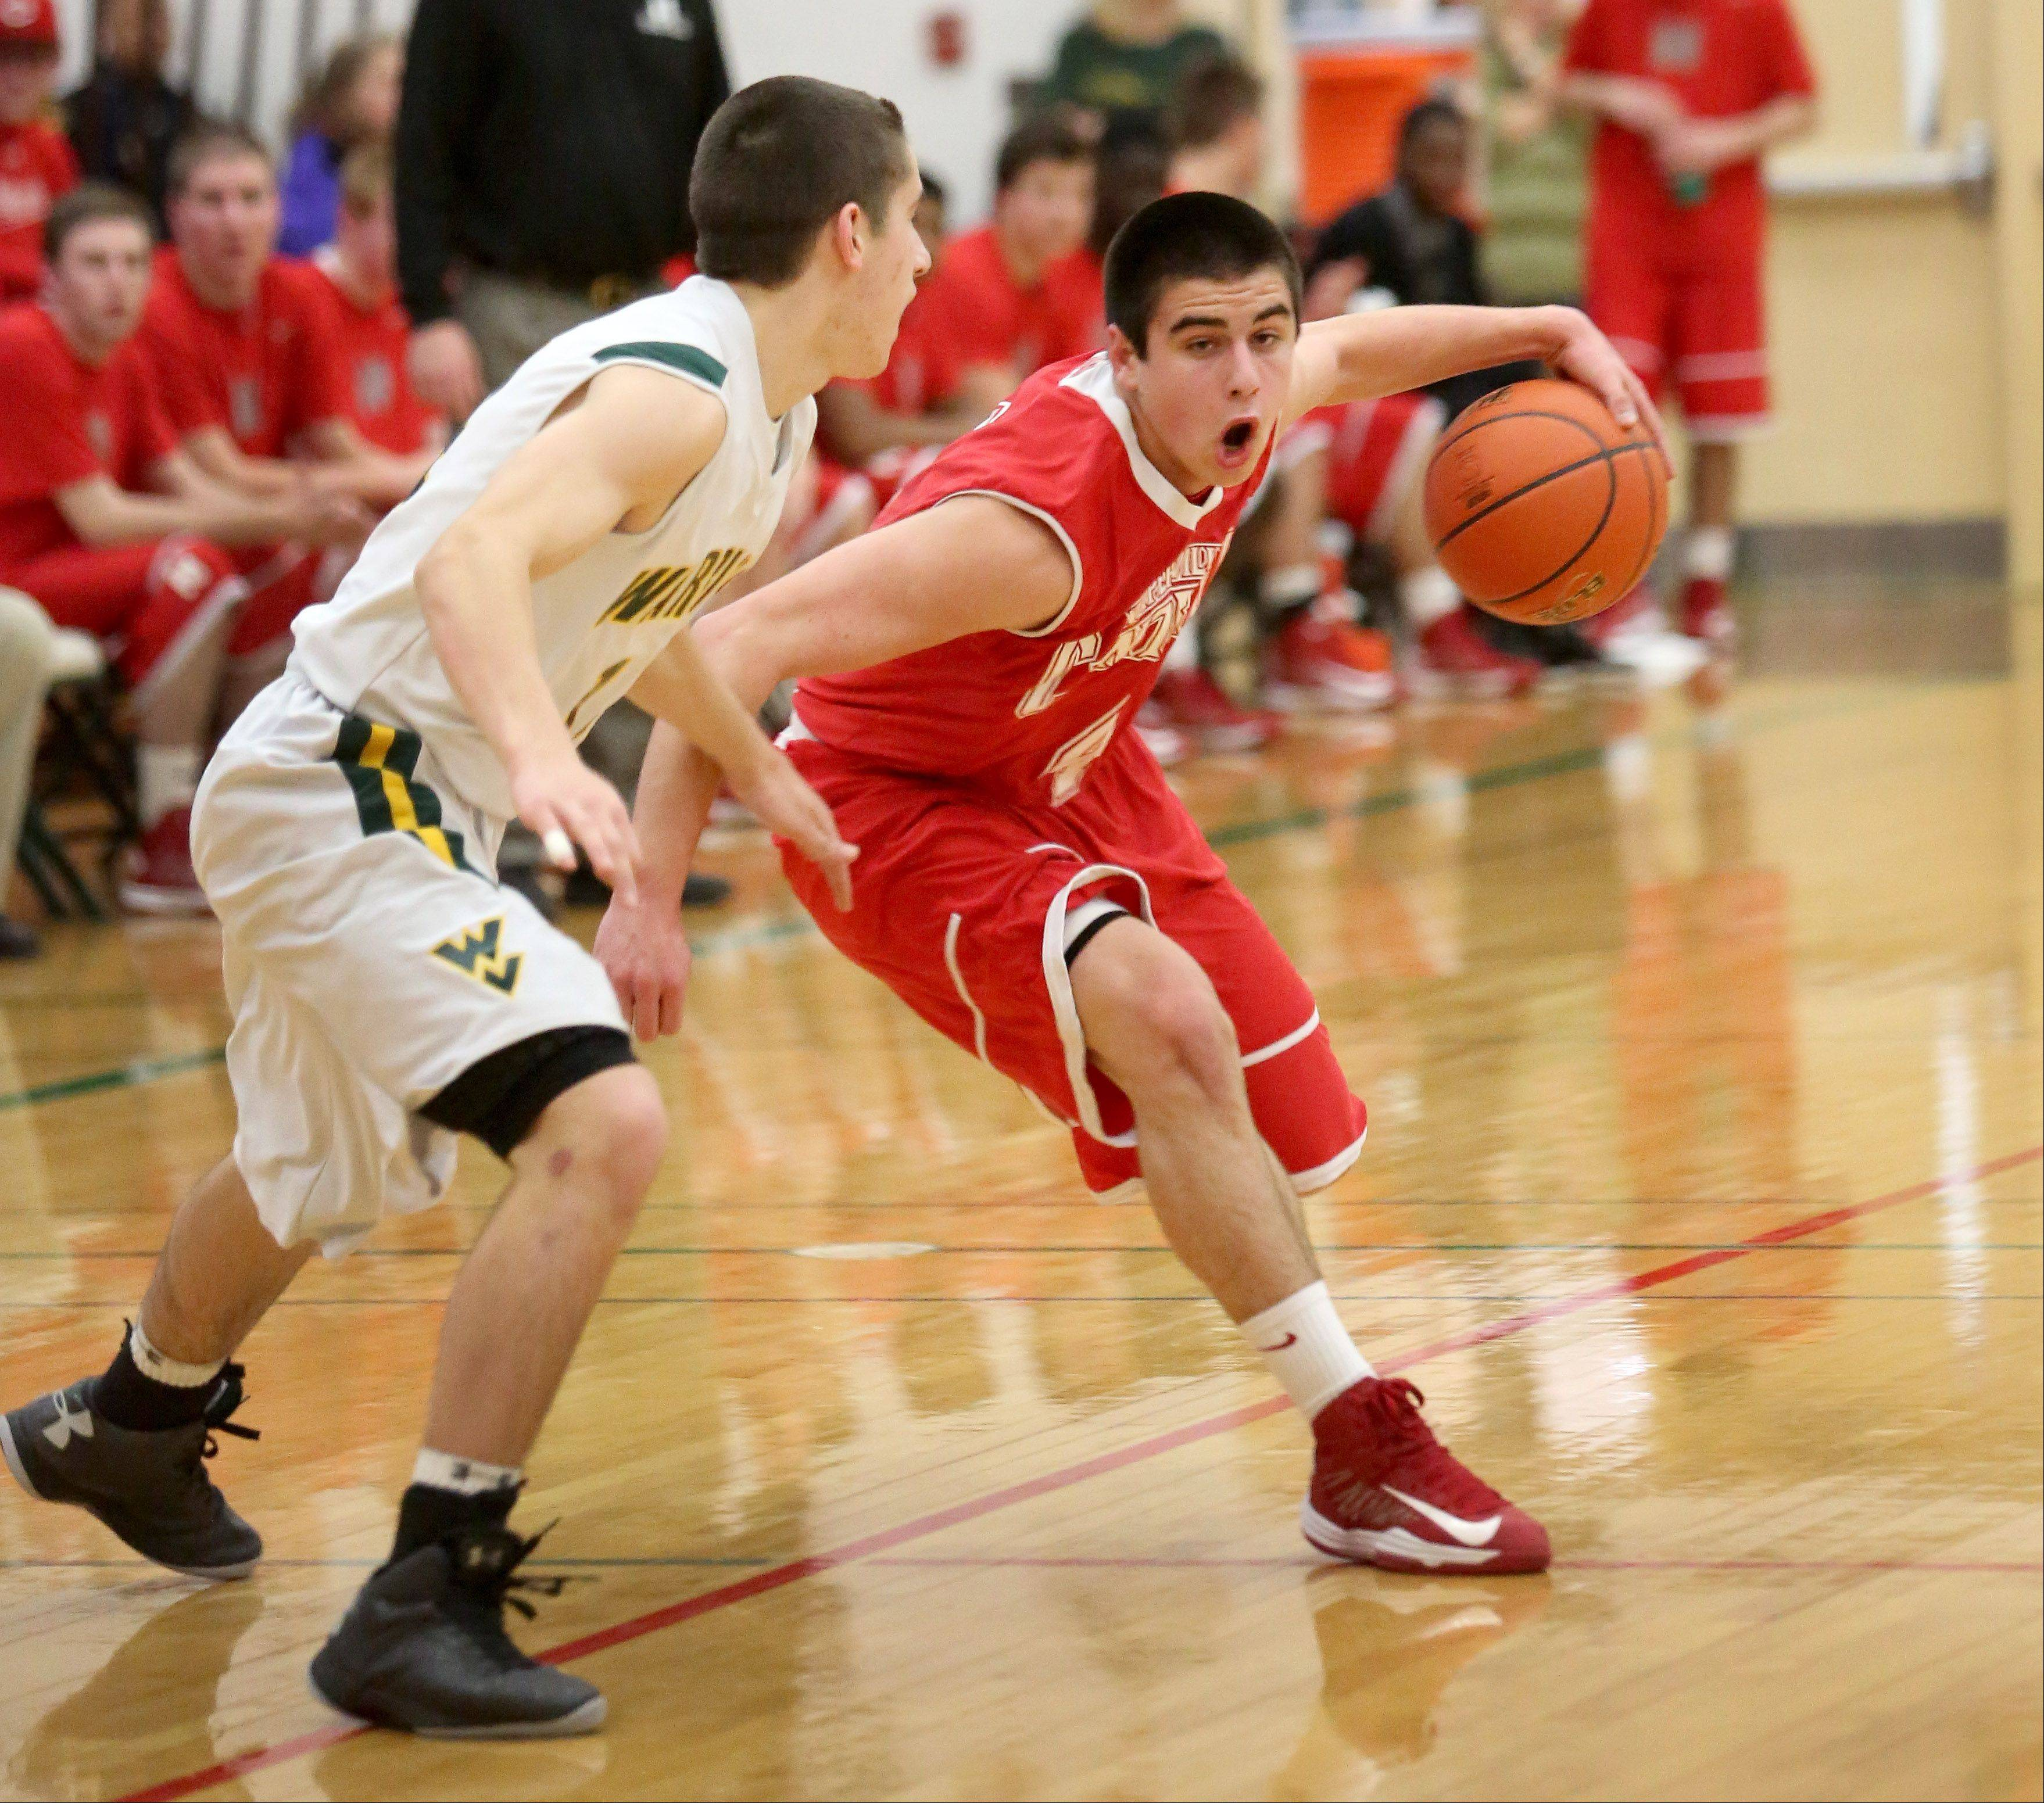 Ryan Antony of Naperville Central, right, moves around Nick Karkazis of Waubonsie Valley in boys basketball action on Tuesday in Aurora.